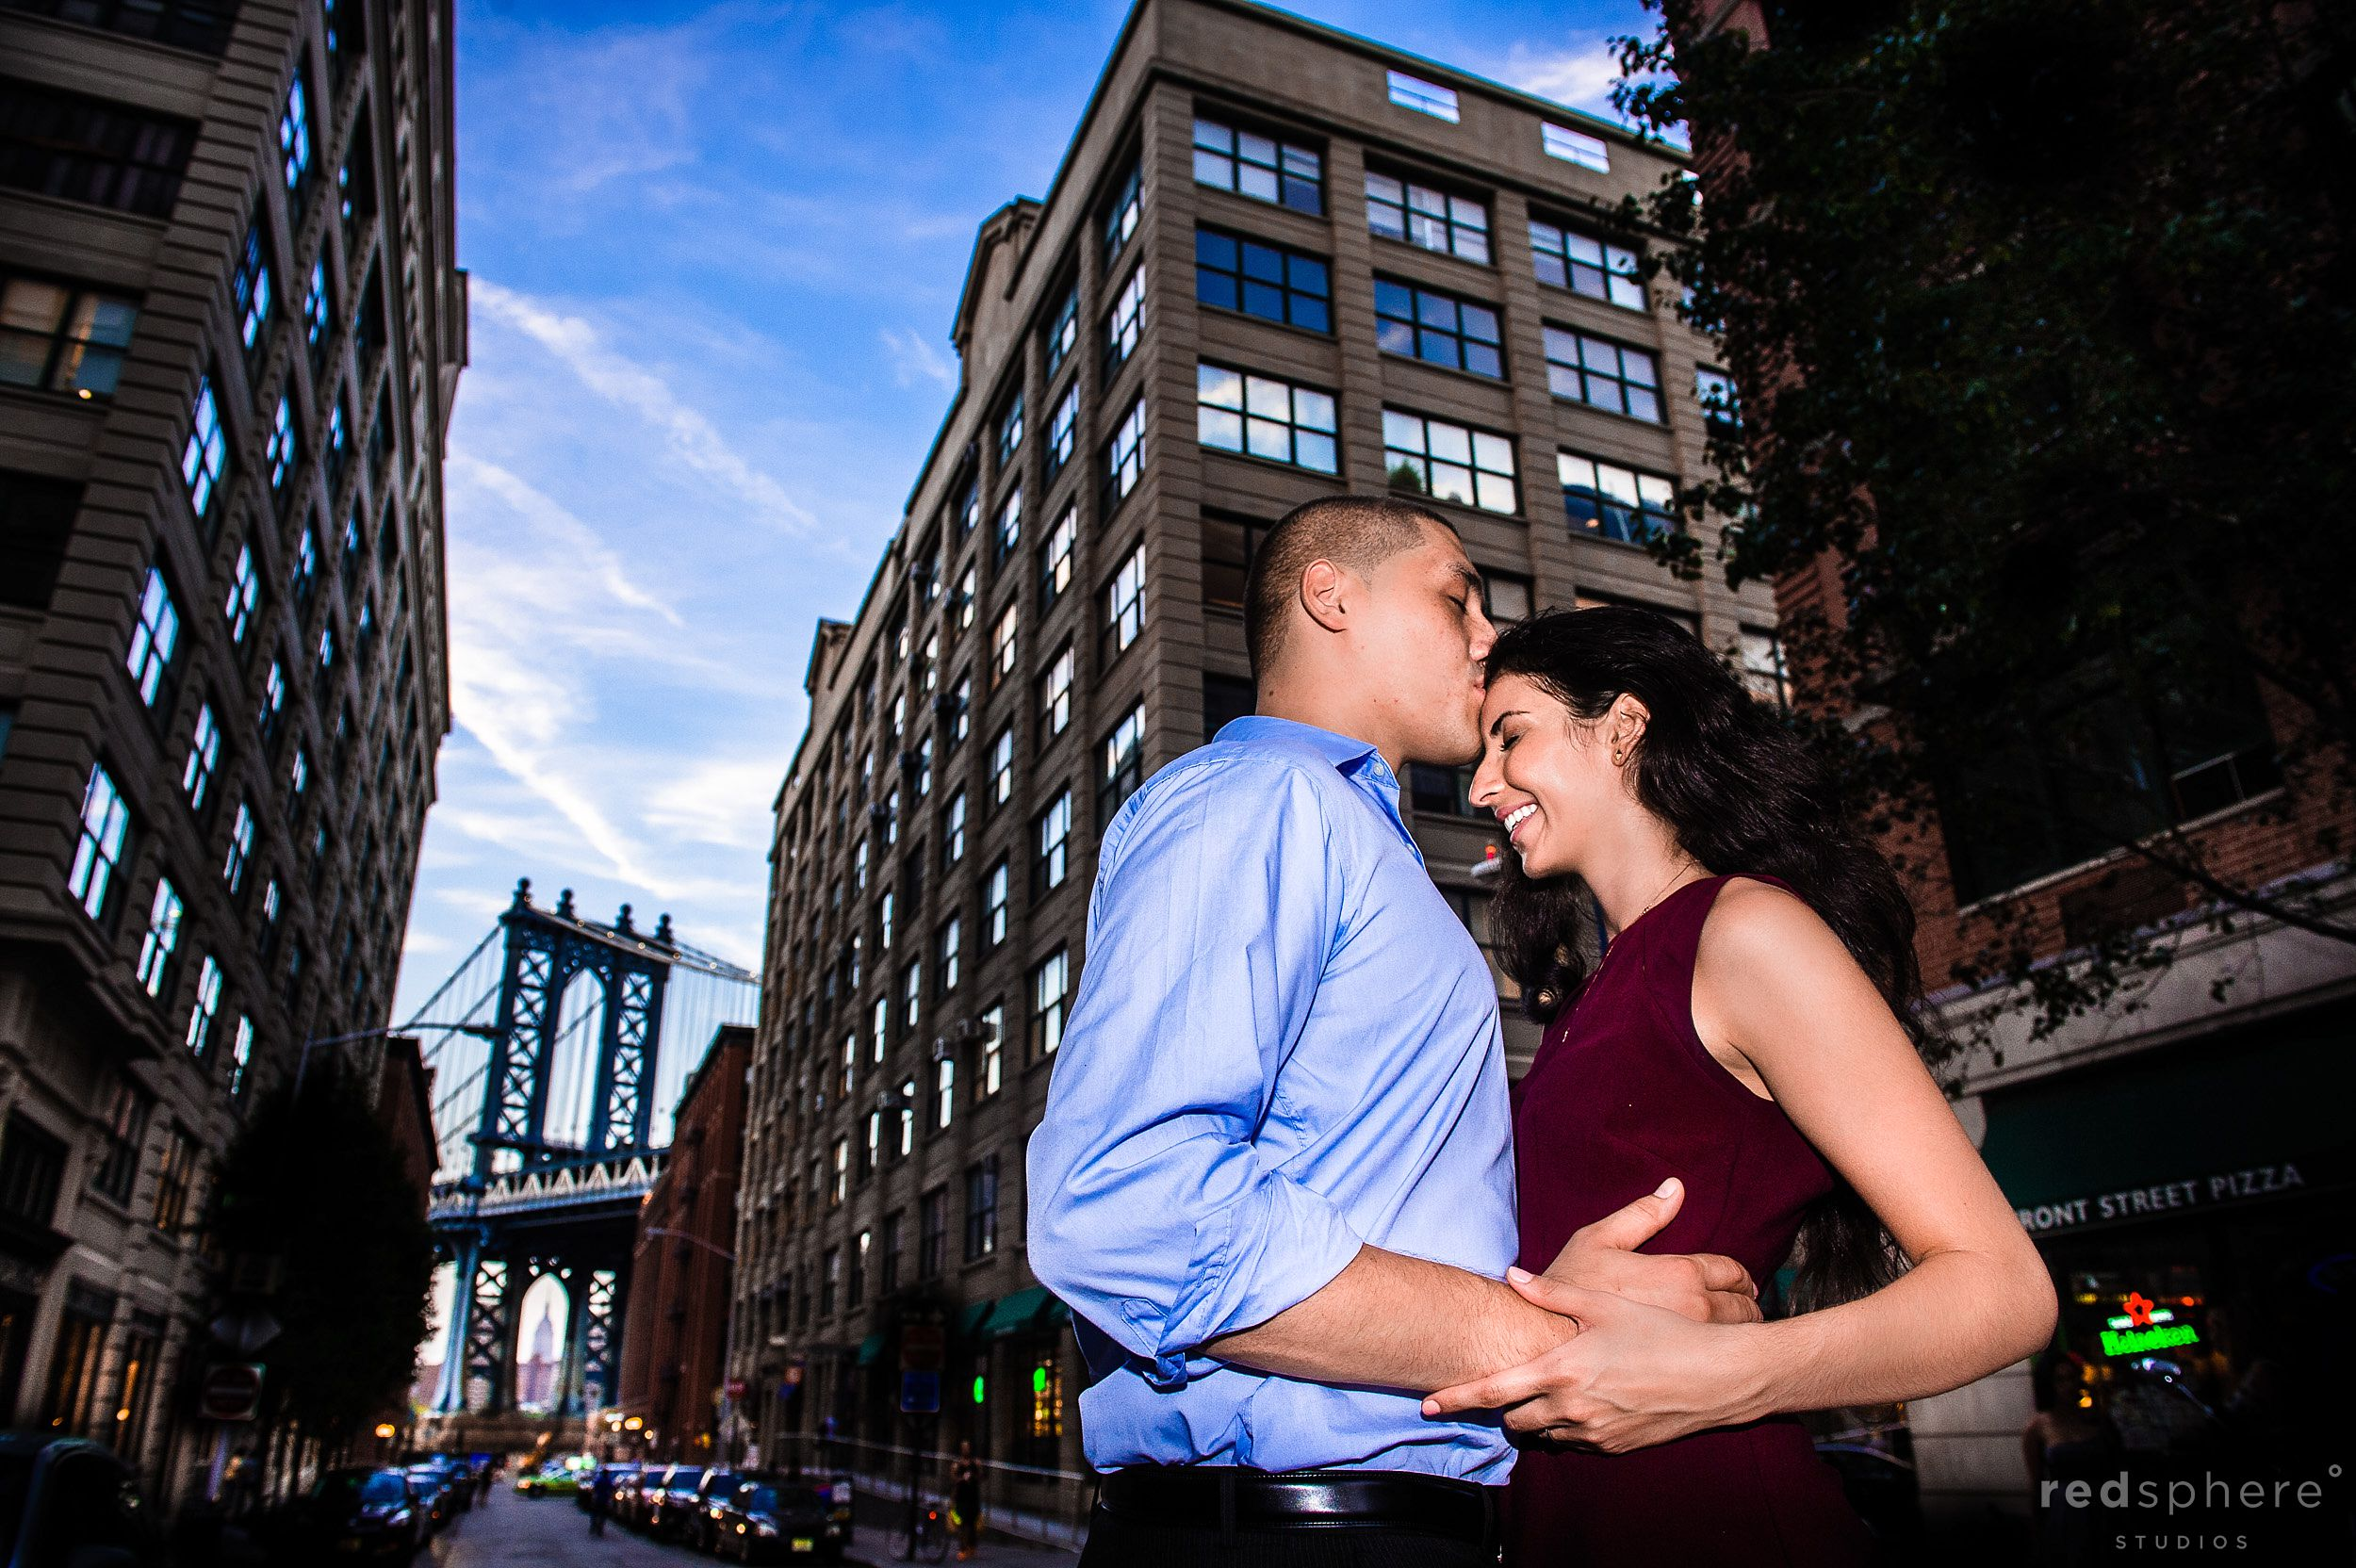 Couple Kiss in NYC Alley, Manhattan Bridge in the Background